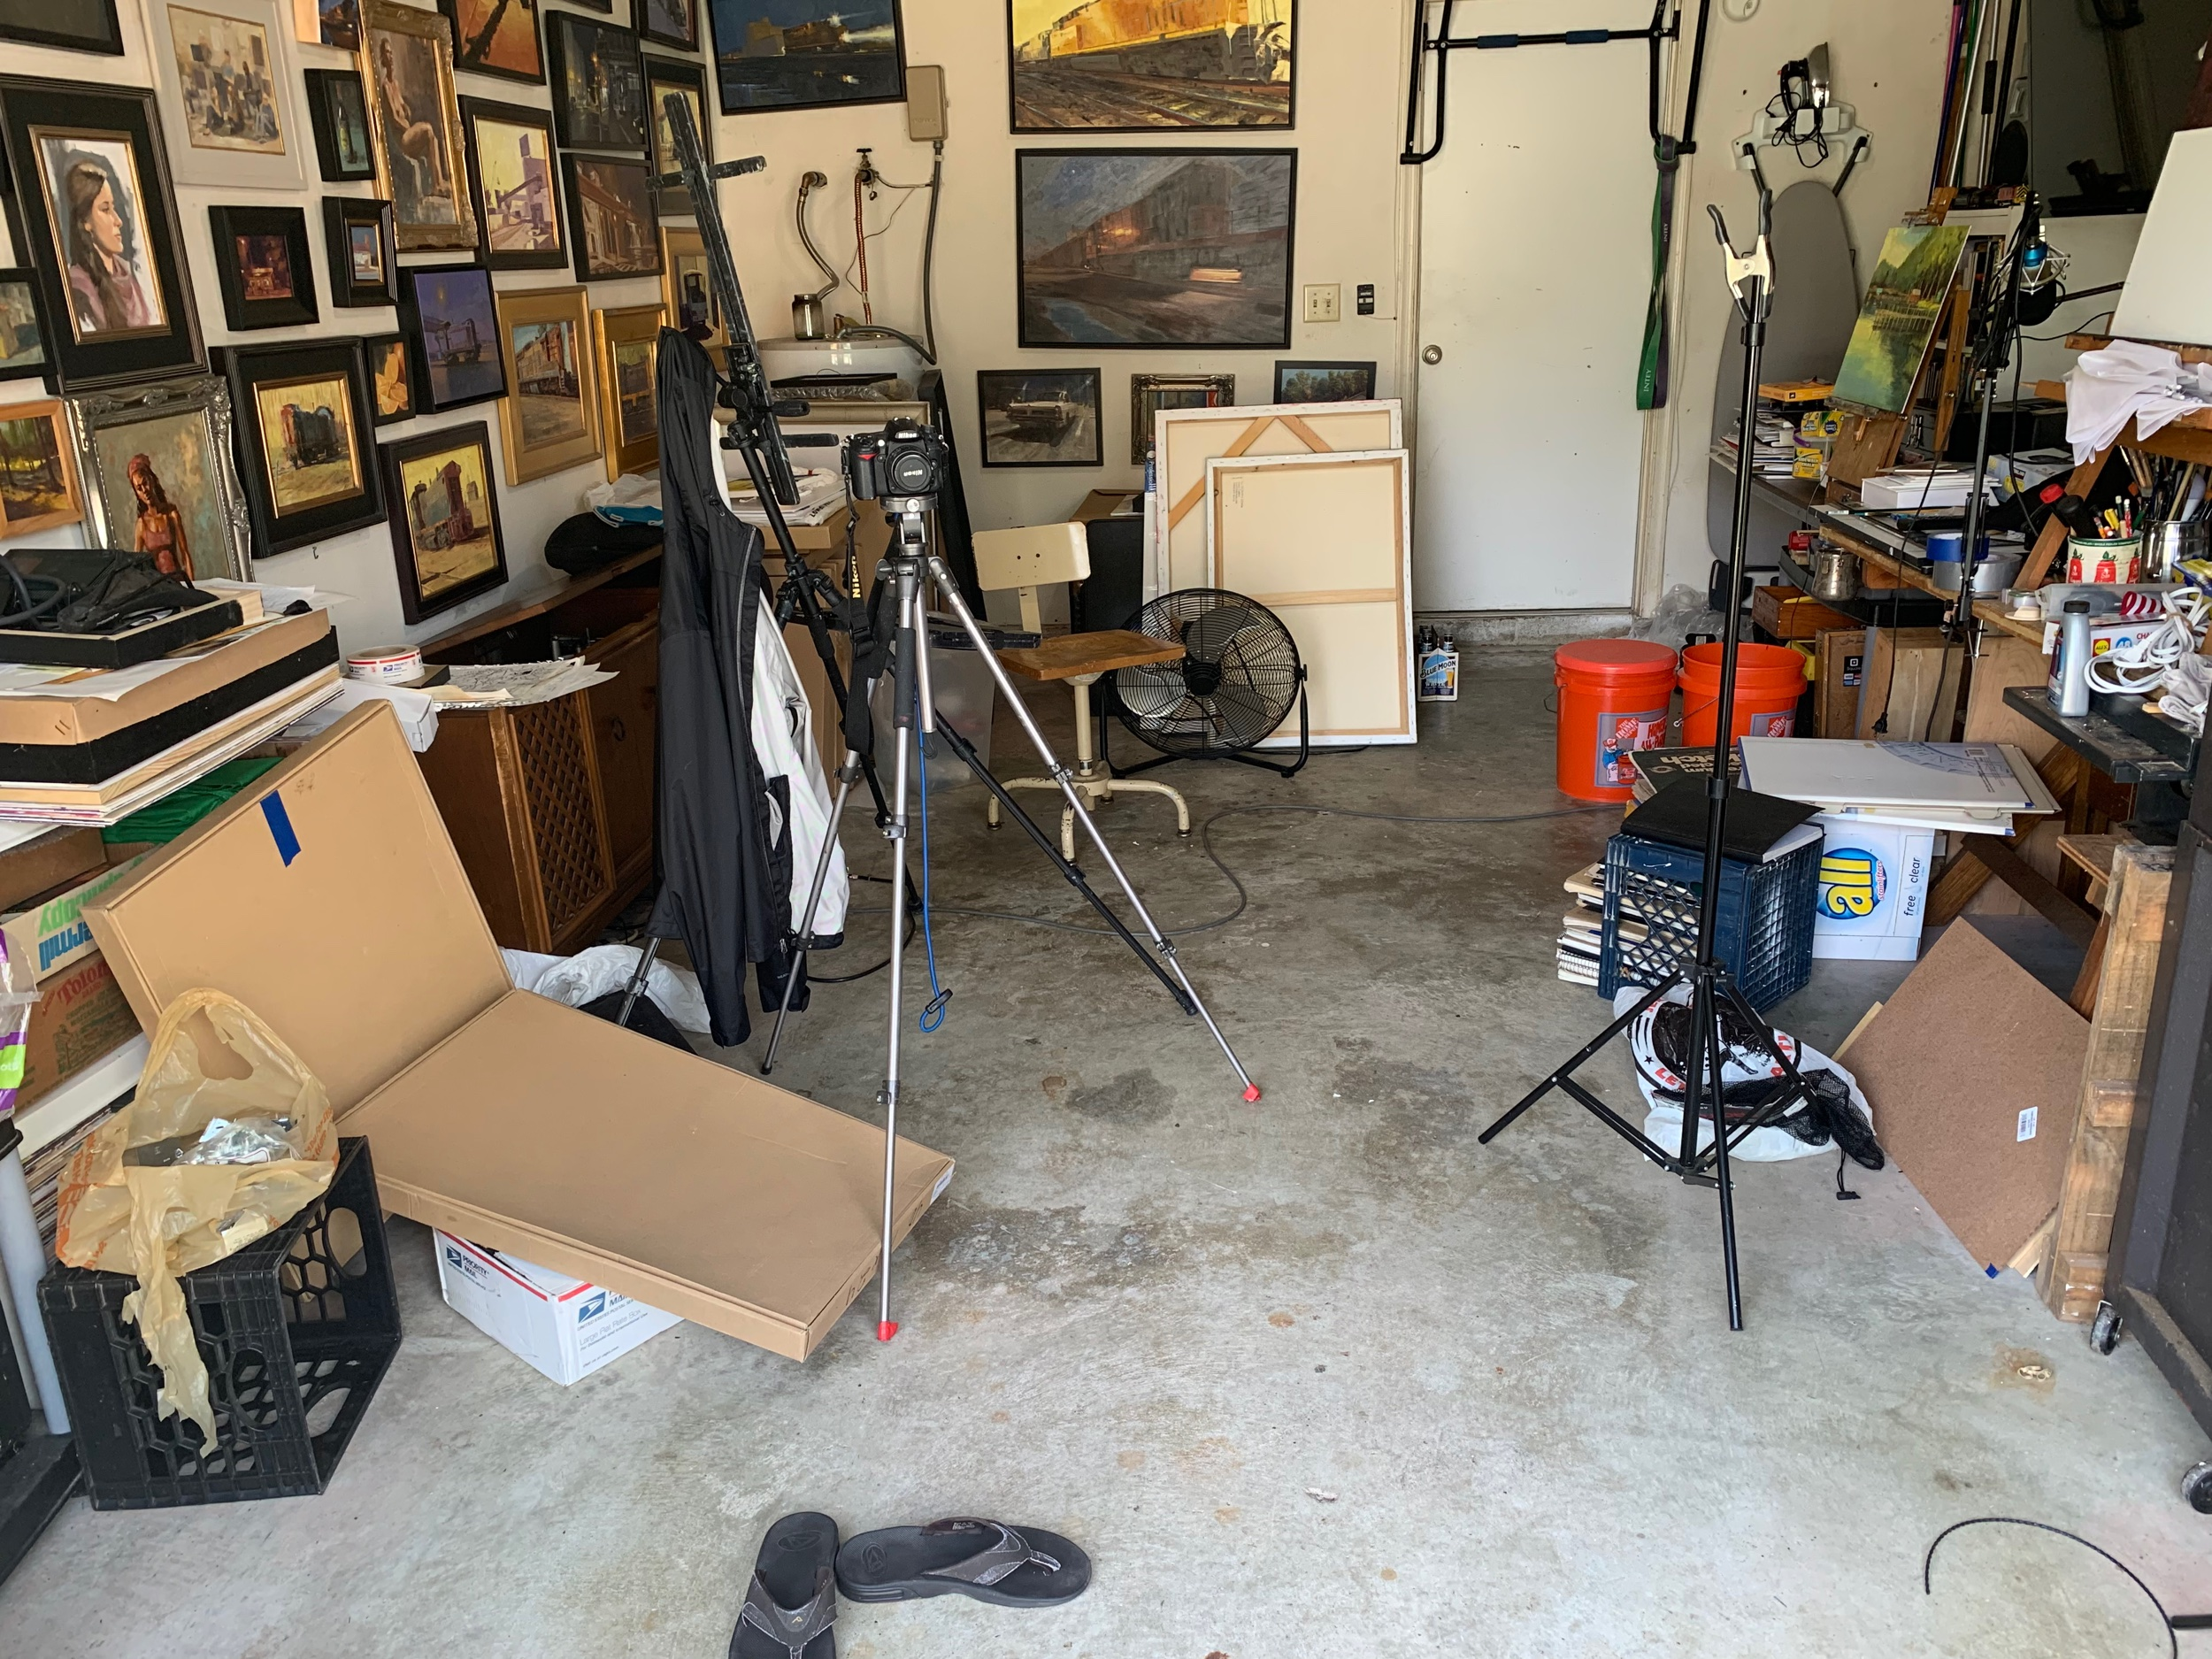 This isn't even my studio at its worst. But at least I can get some work done now while cleaning out the rest of my art supplies and other crap.